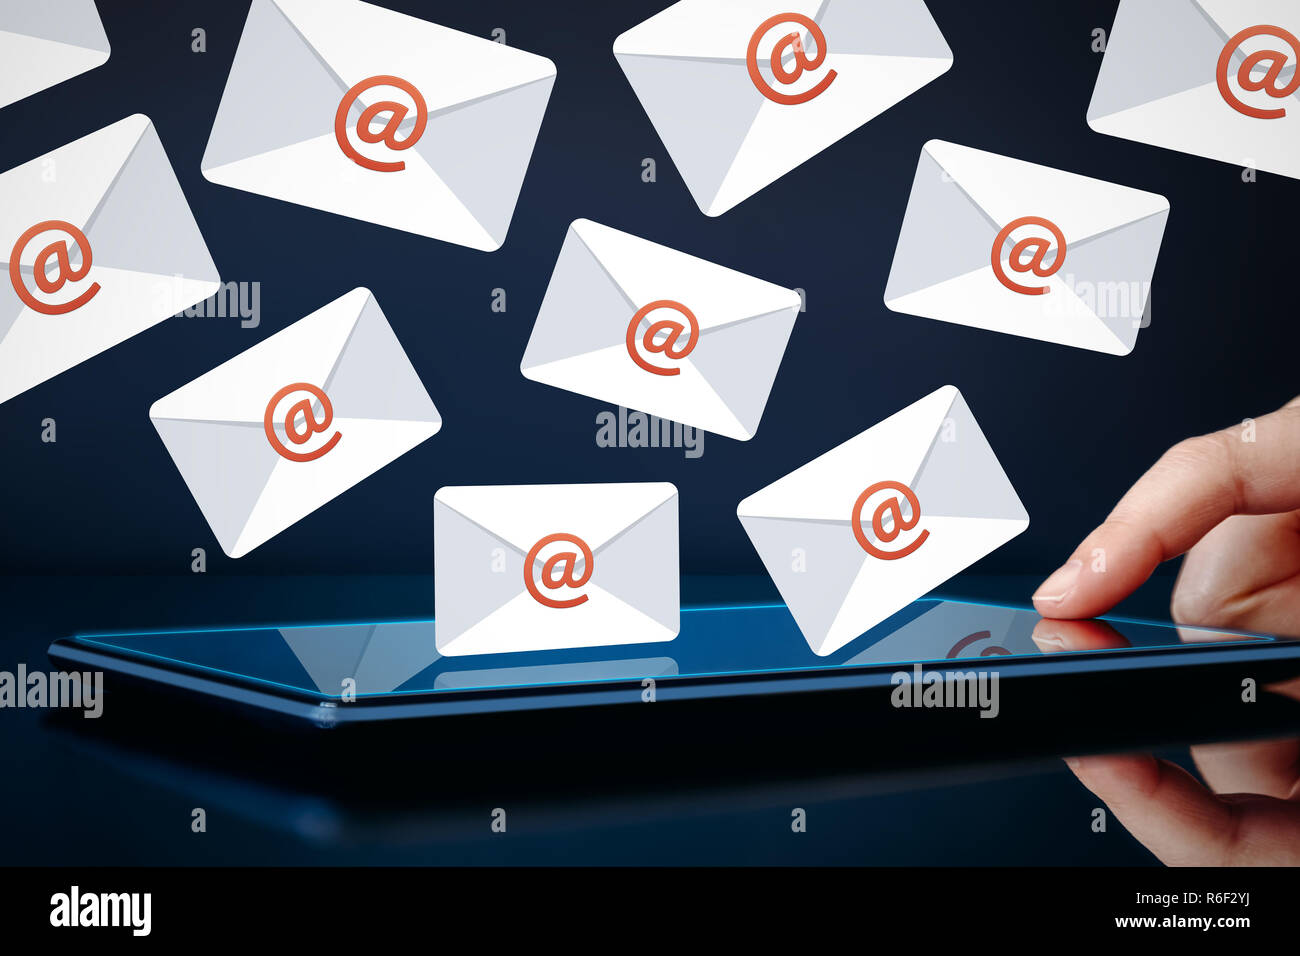 Newsletter and email marketing concept. Hand touching tablet showing email icons on dark background. - Stock Image